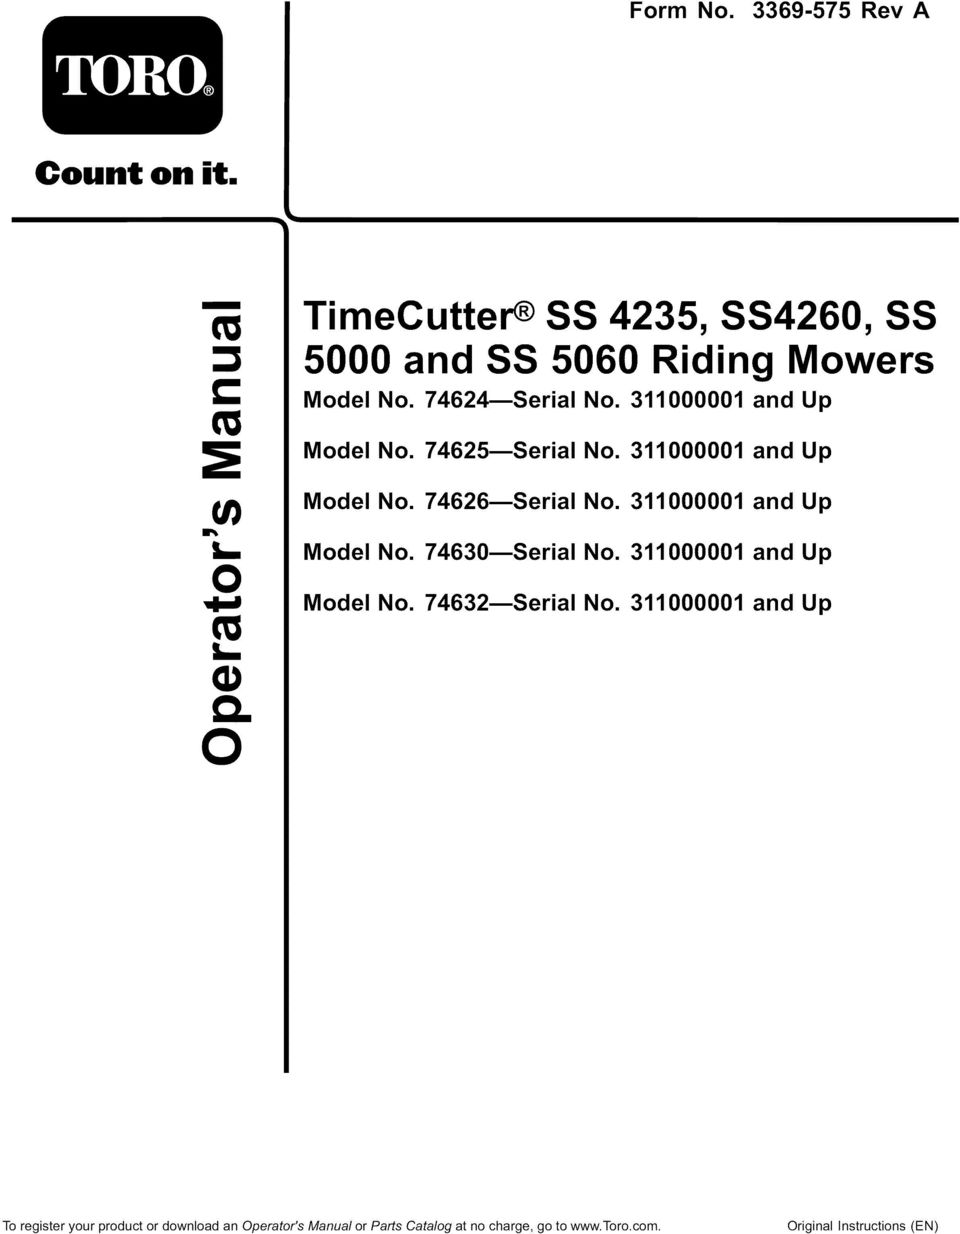 5000 And Ss 5060 Riding Mowers Pdf Toro Timecutter Wiring Diagram Under Seat Wires Up 0 Model No 74630 Serial 311000001 74632